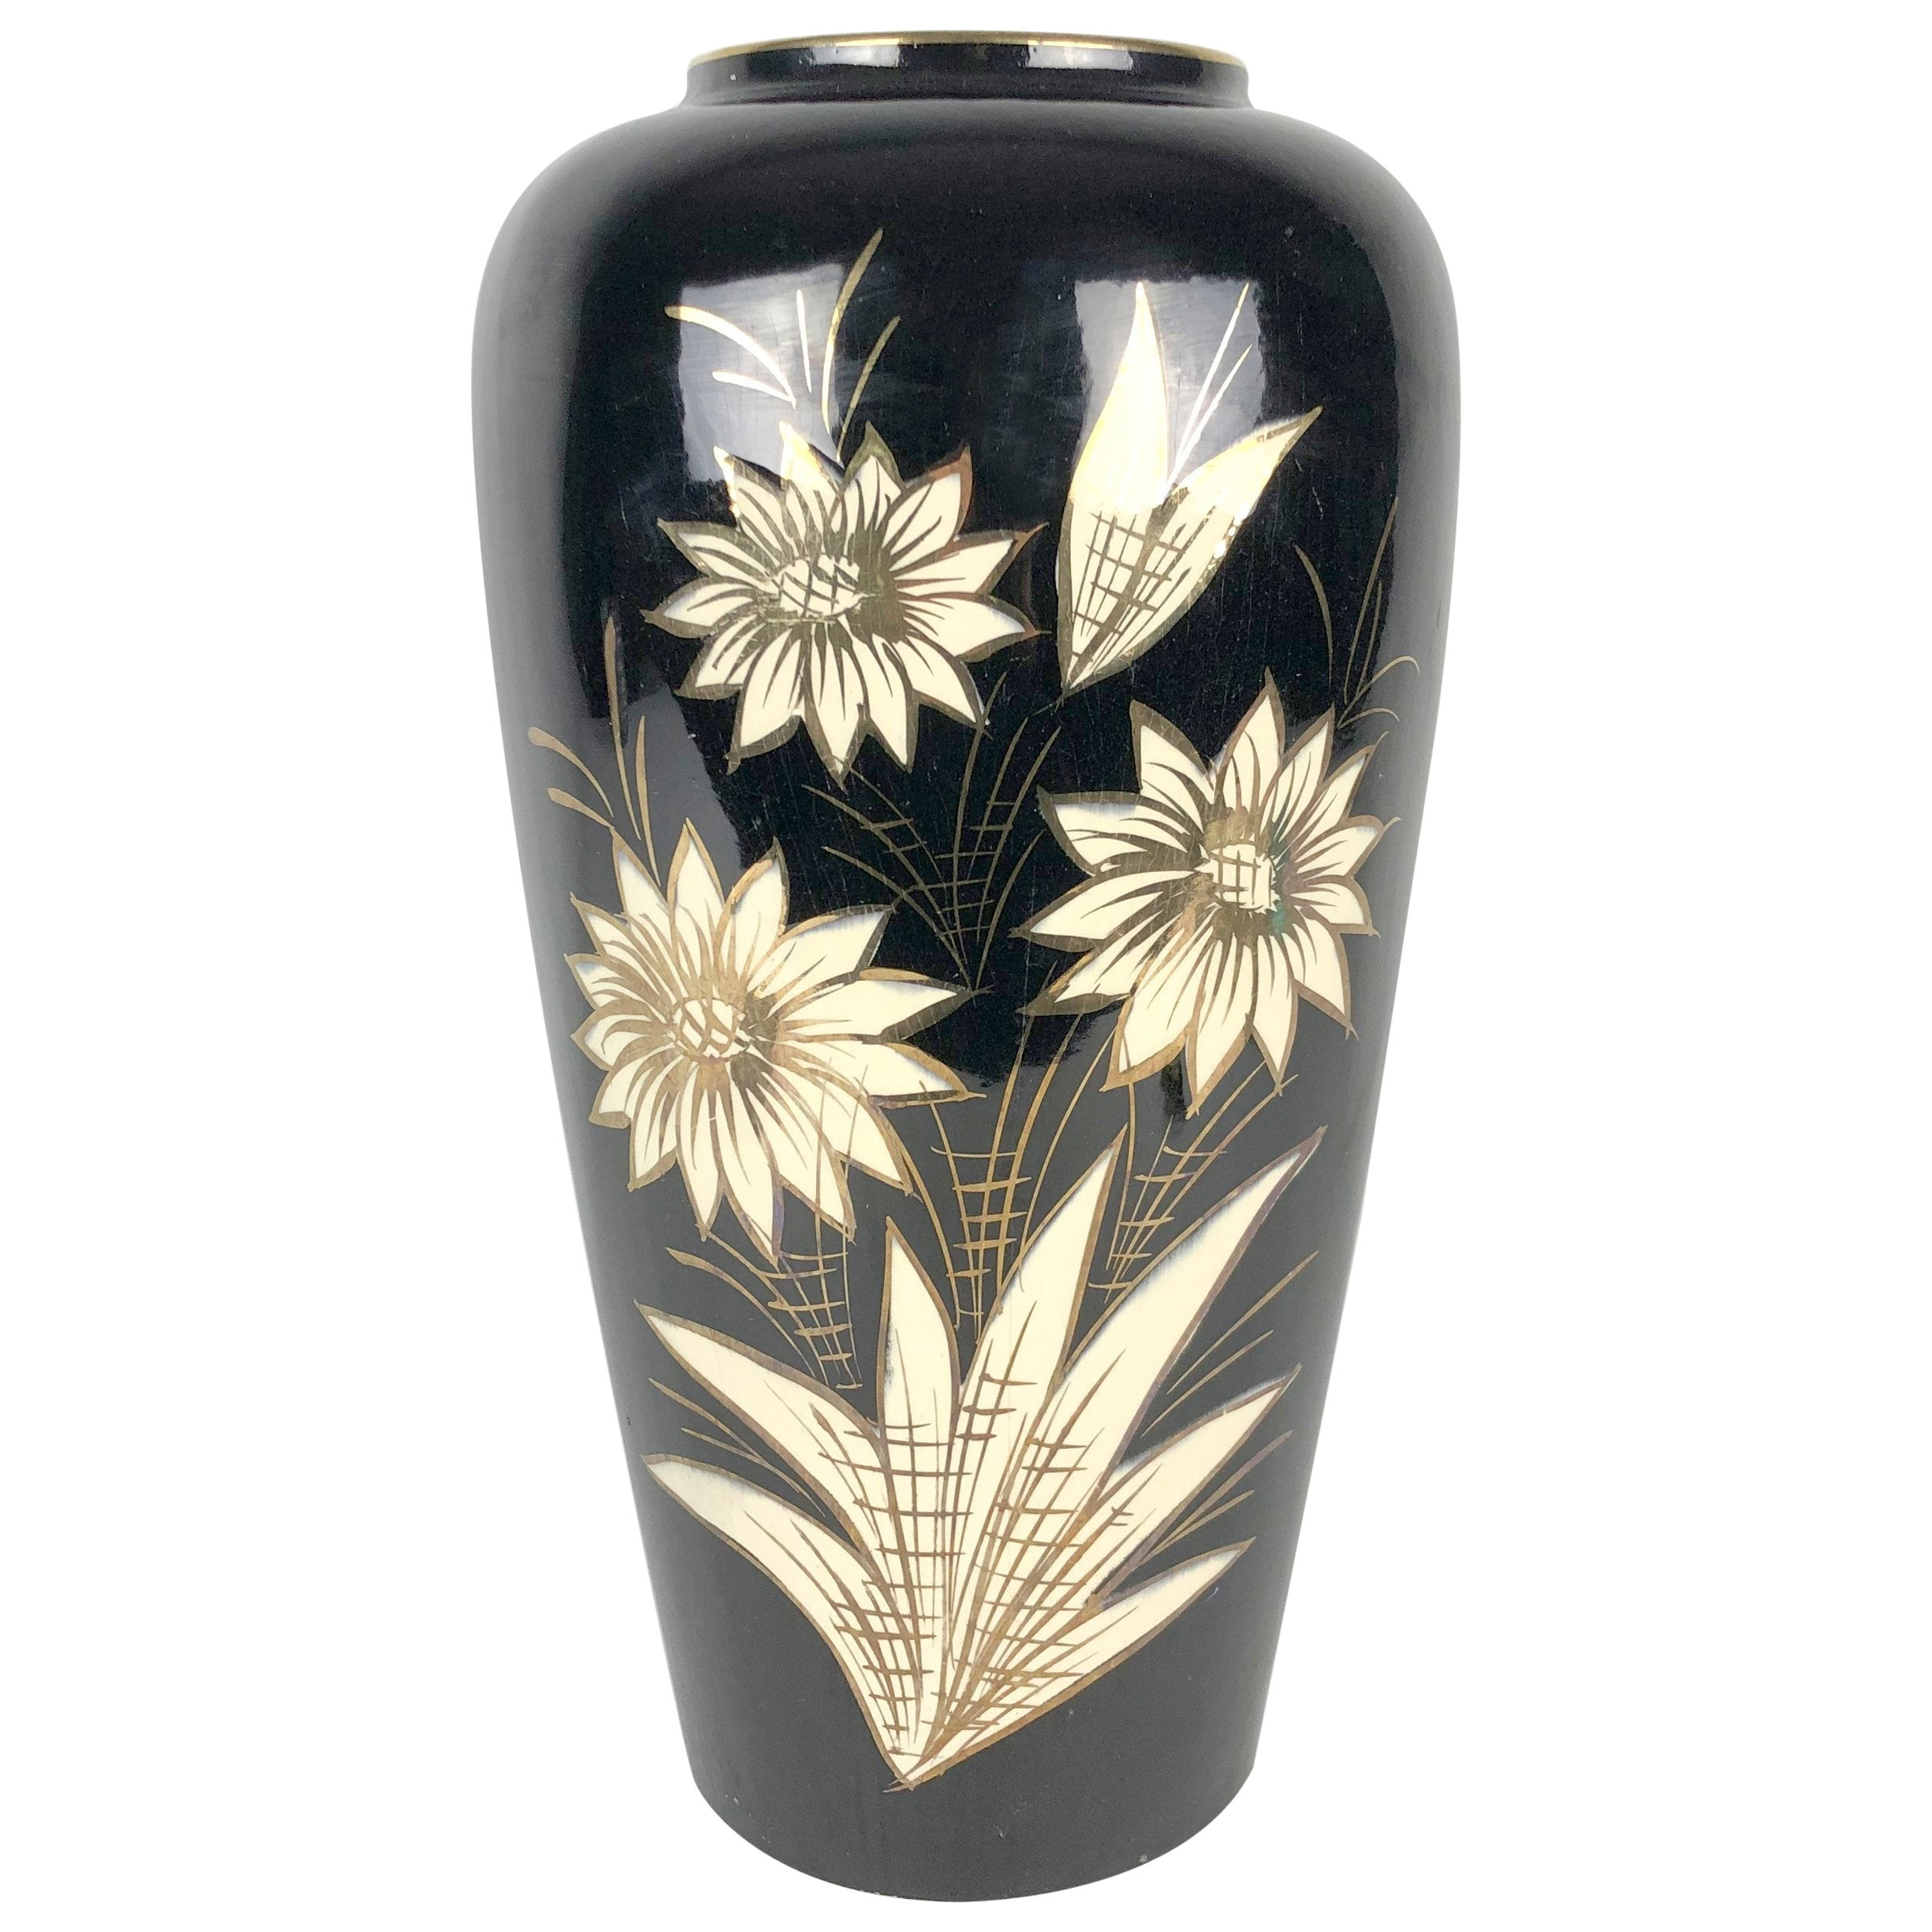 Large Ceramic Vase by Scheurich, Germany 1960s